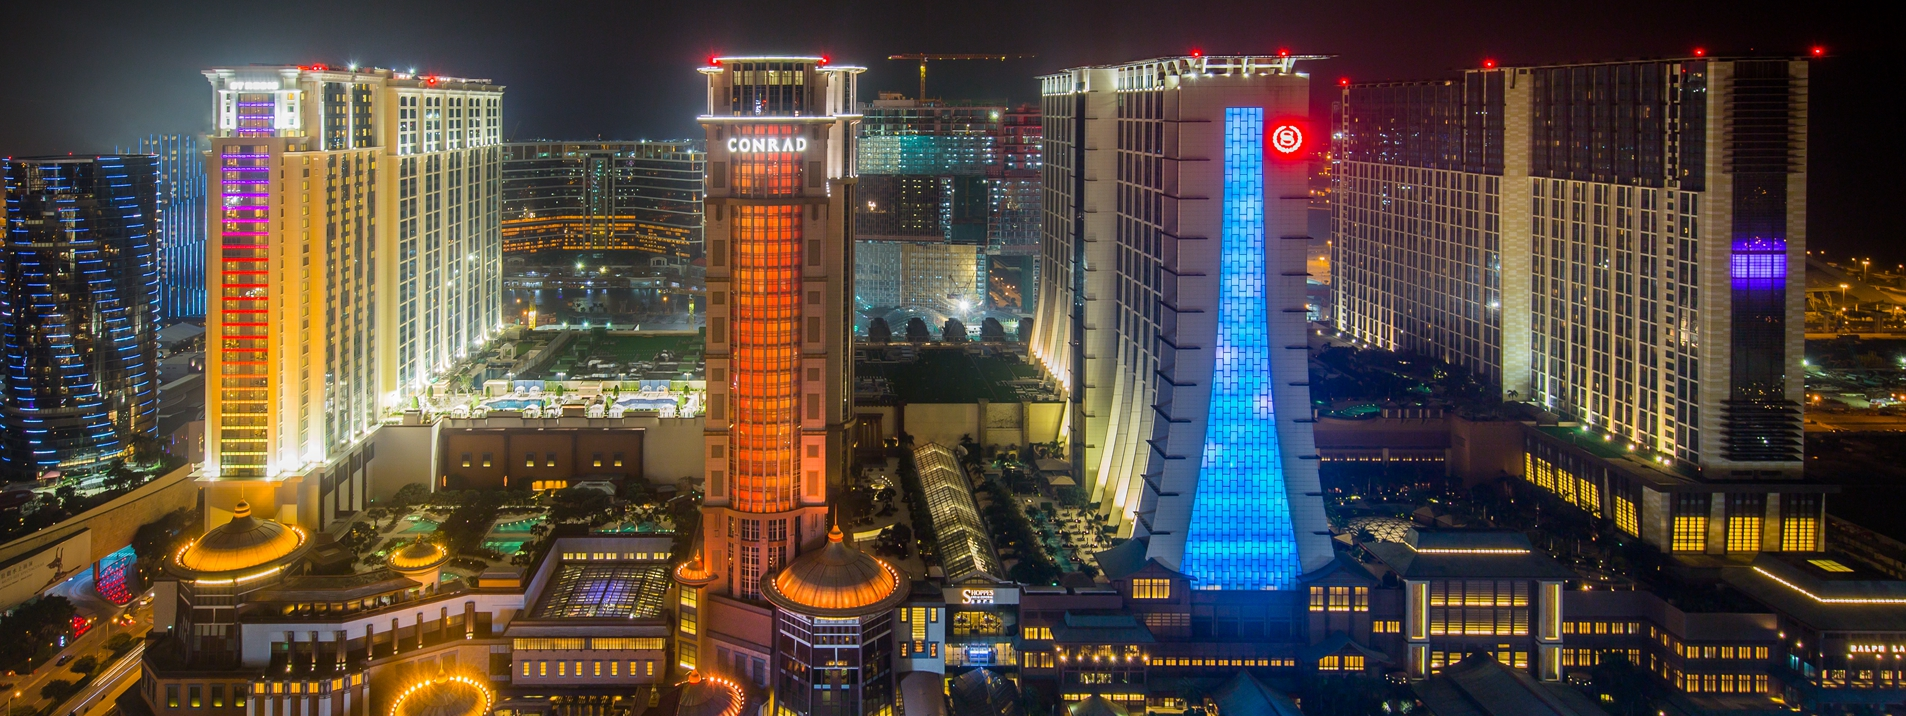 sands cotai central macau